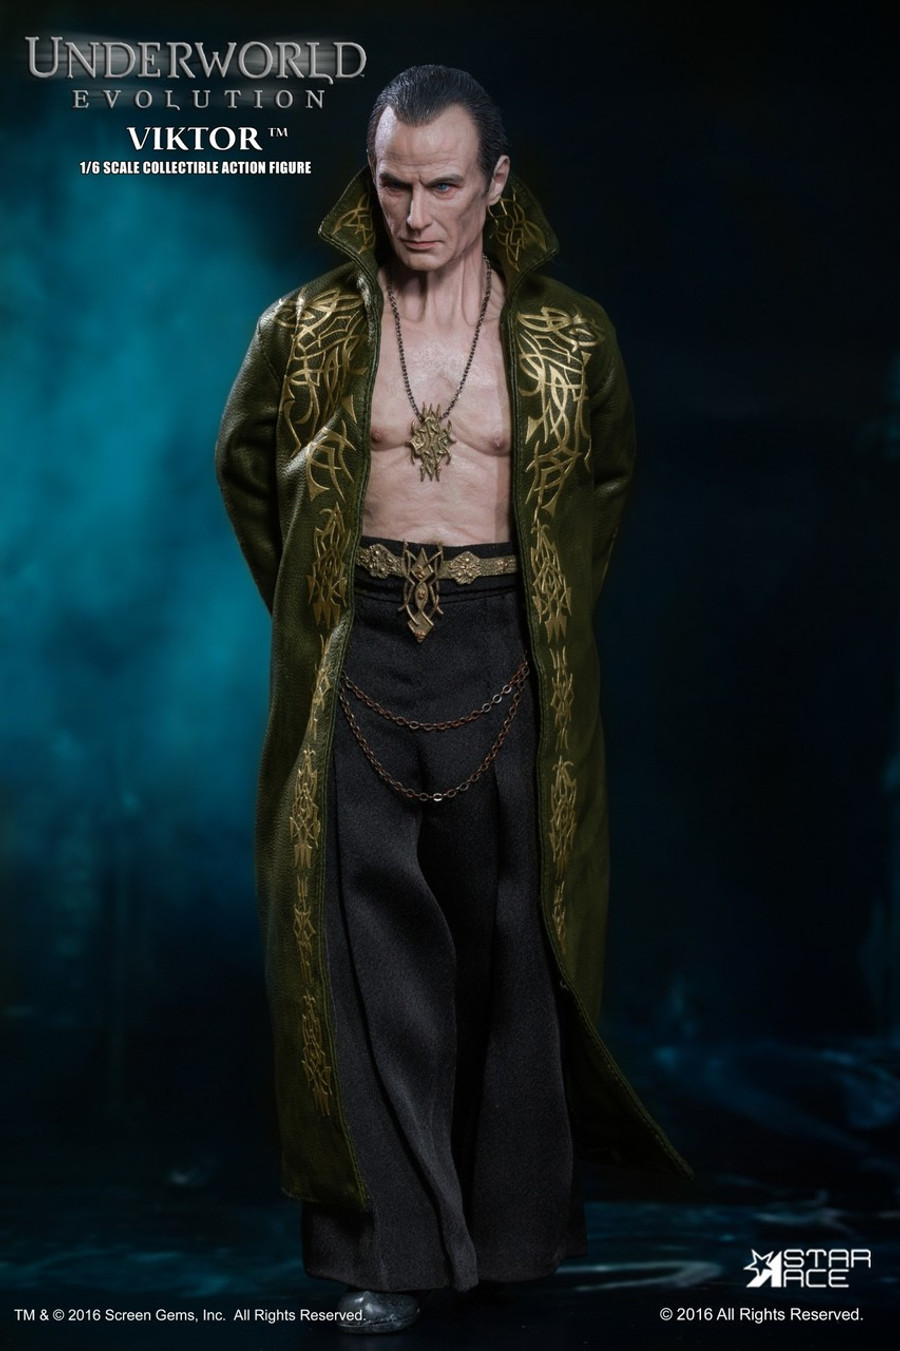 Star Ace - Underworld: Evolution - Viktor (Limited Edition)